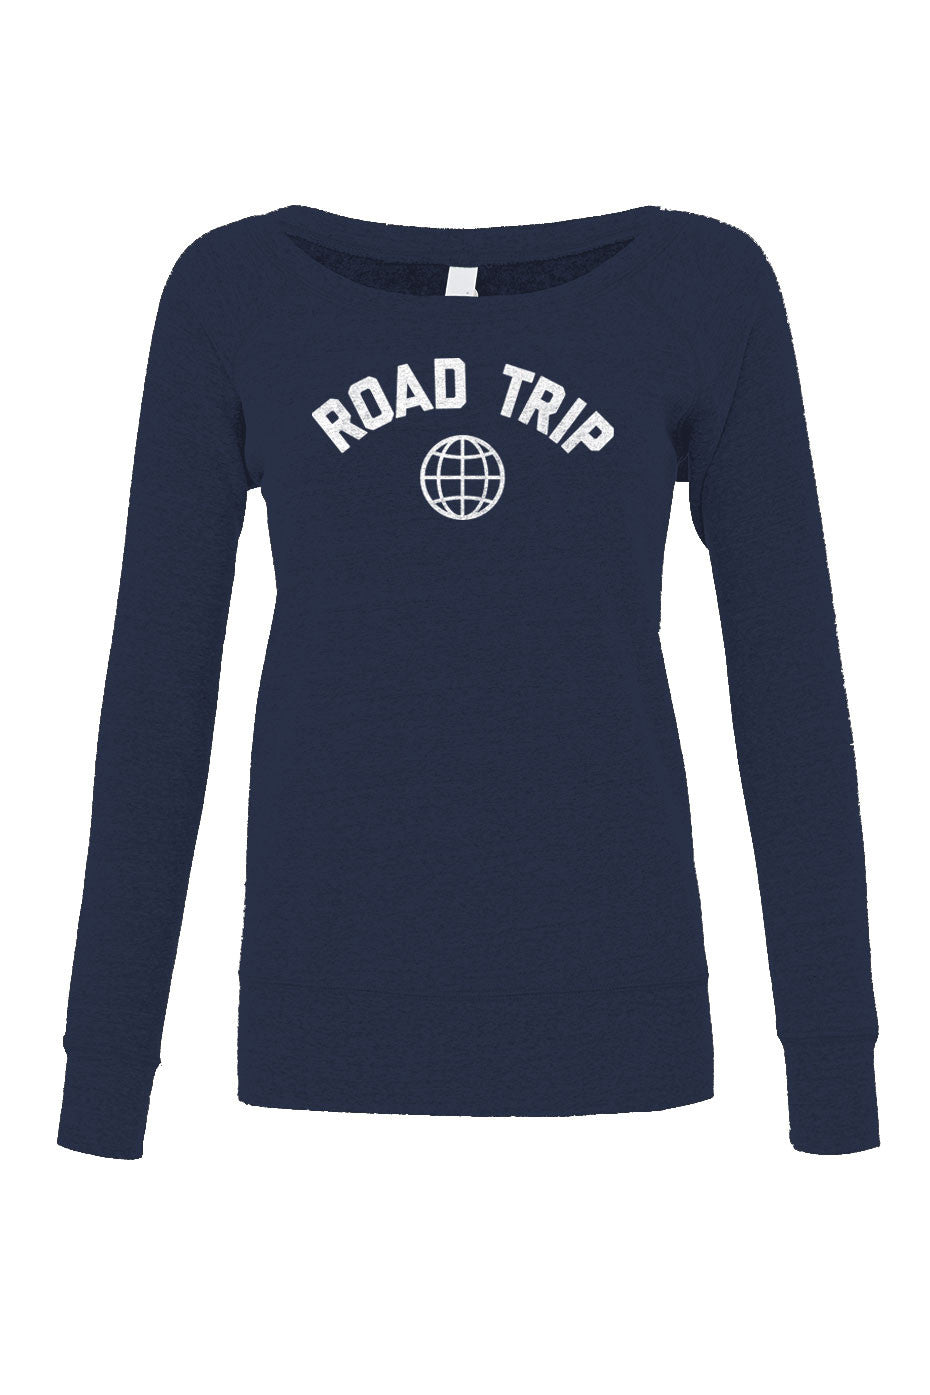 Women's Road Trip Scoop Neck Fleece Retro Athletic Travel